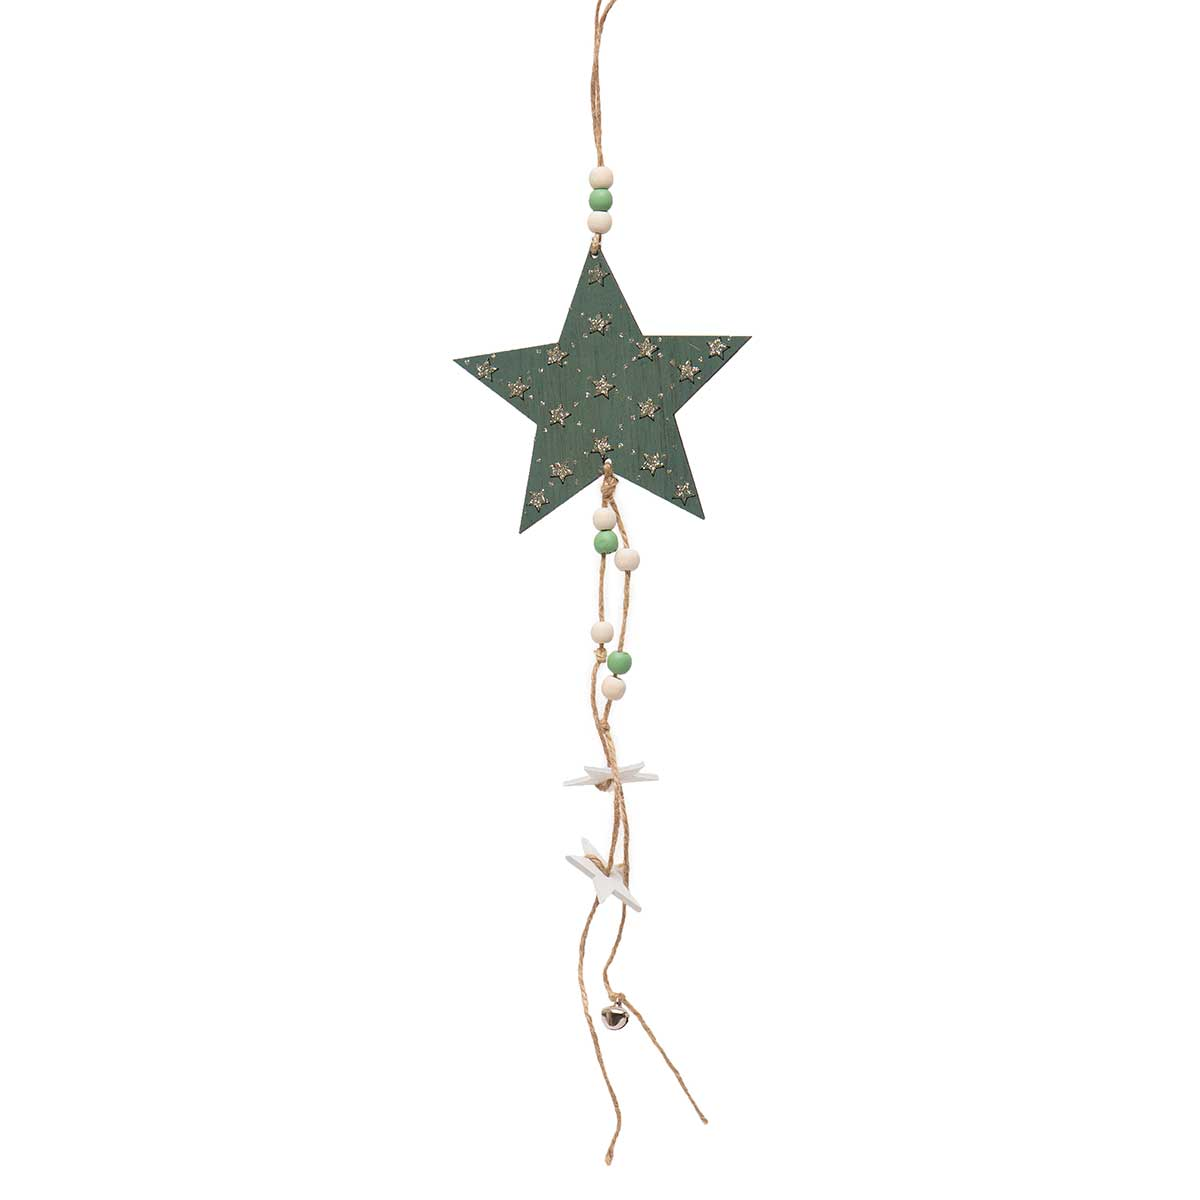 GREEN WOOD STAR DANGLE WITH GLITTER,